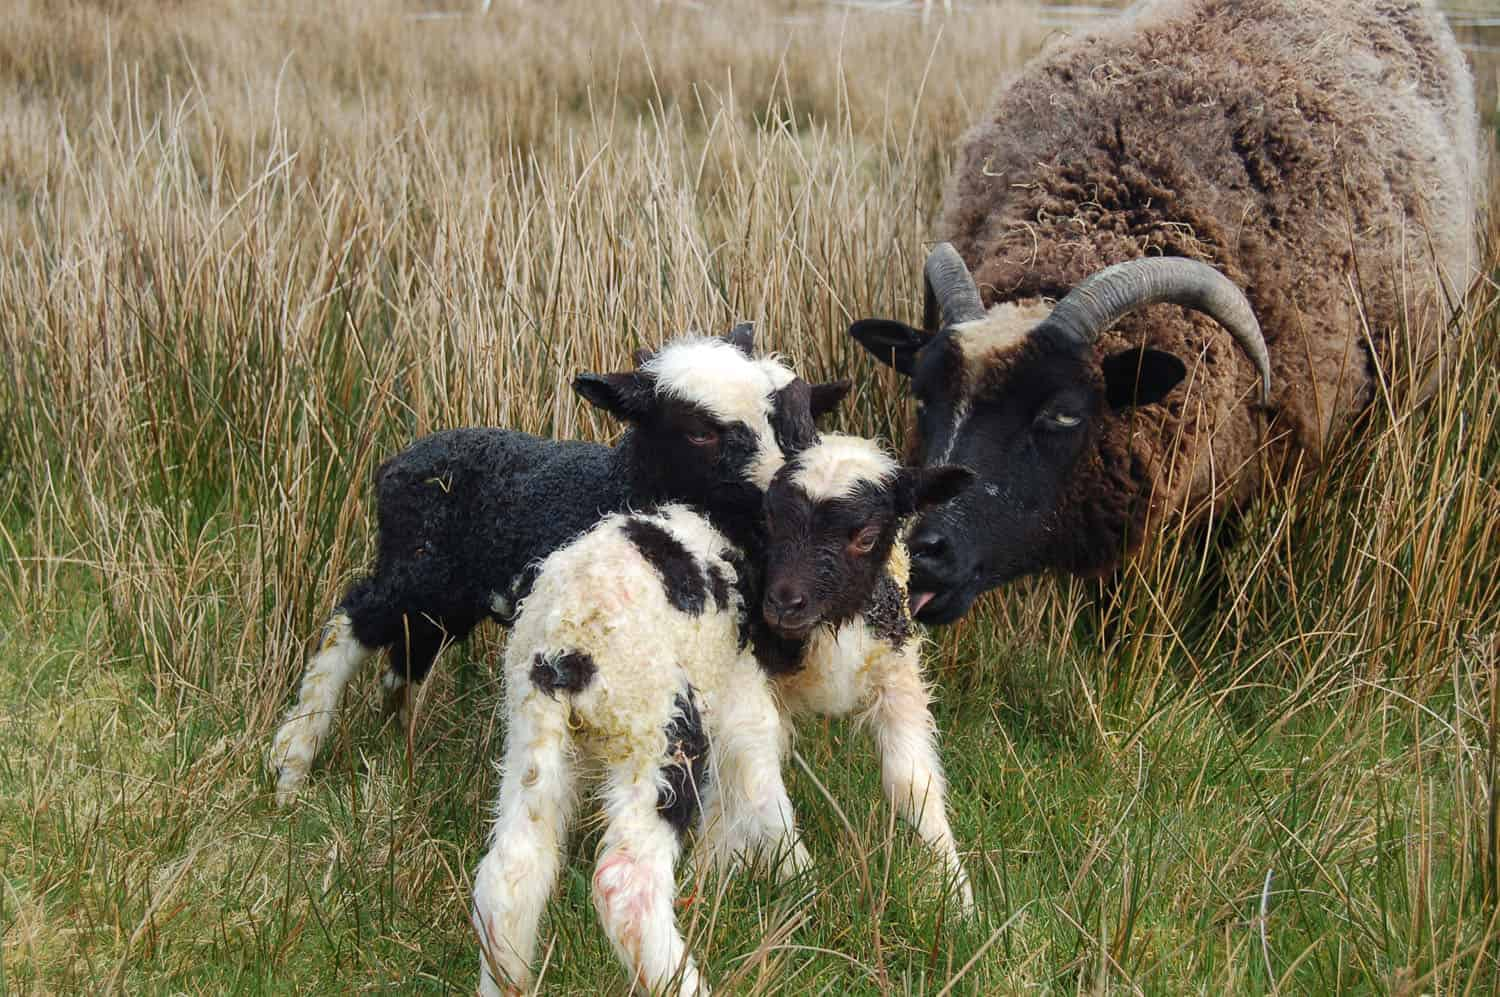 Minnie jacob cross shetland sheep patchwork sheep kind fibre wool triplet ewe lambs